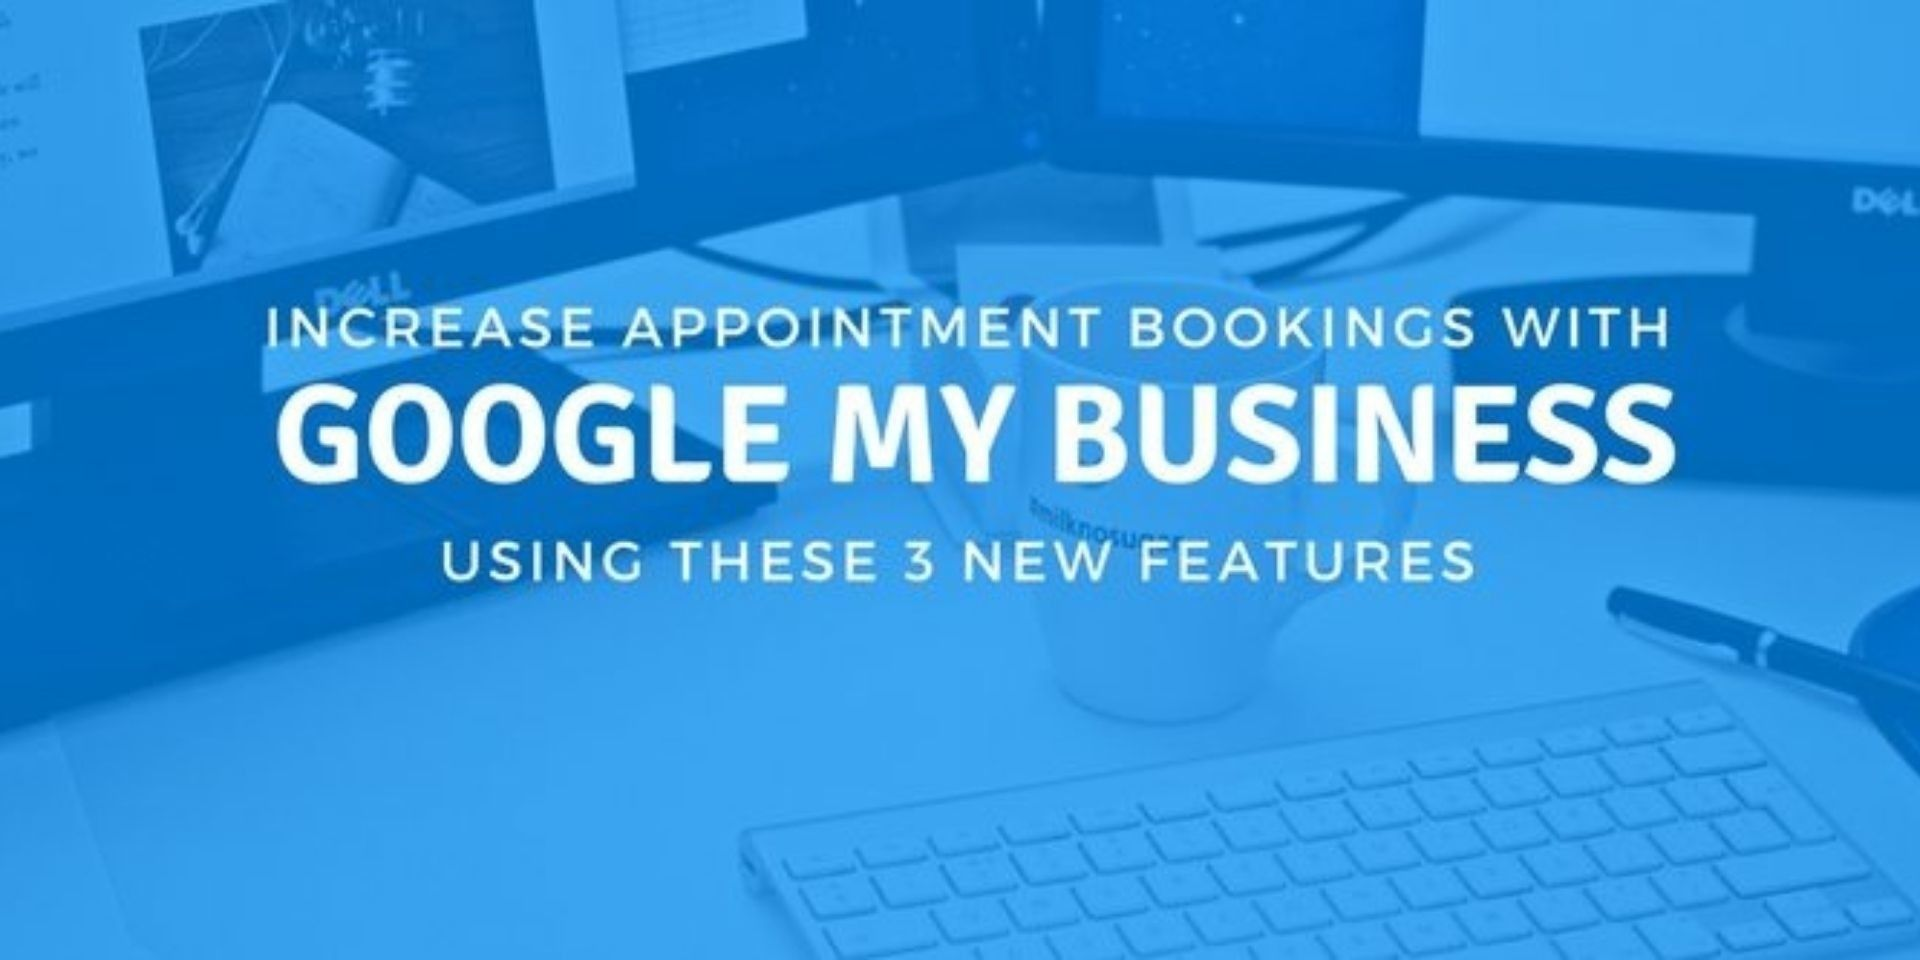 Reserve with Google for business